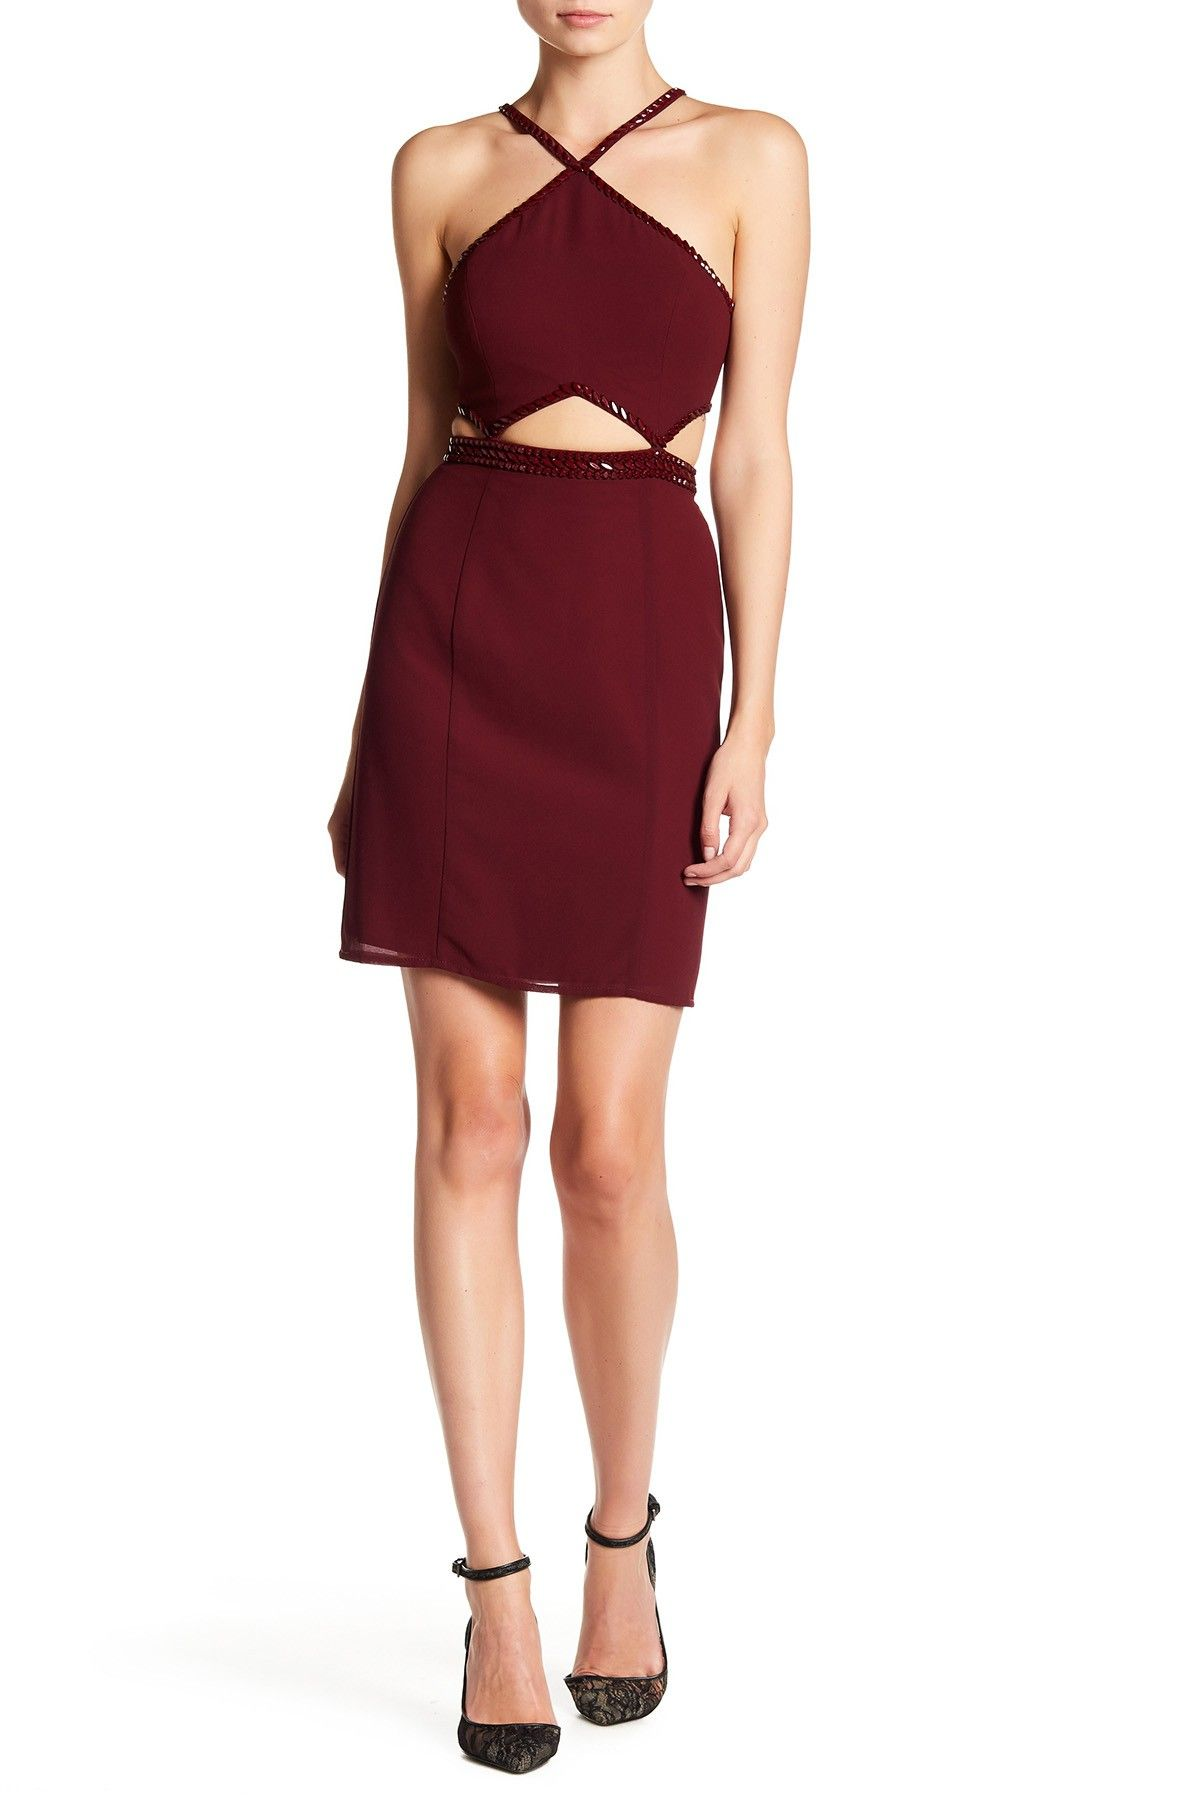 Minuet jewel strap backless dress jewel nordstrom and free shipping